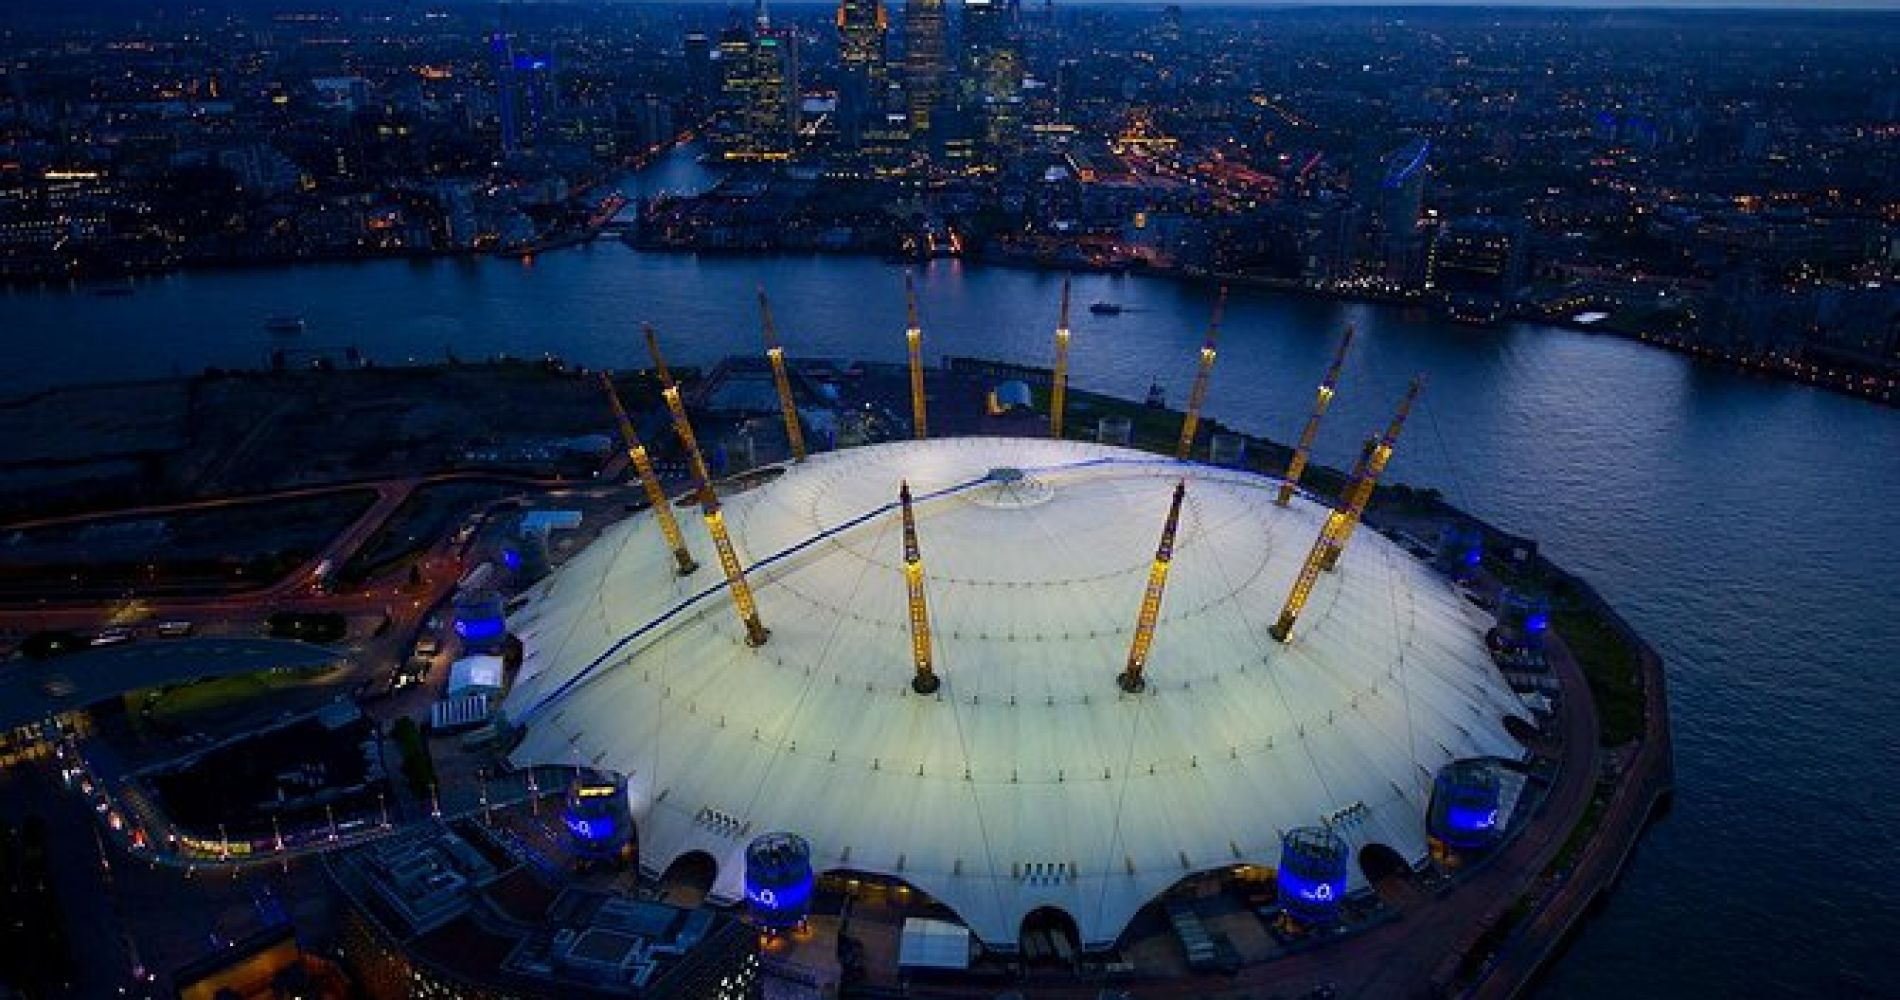 Up at The O2 Climb in London for Two